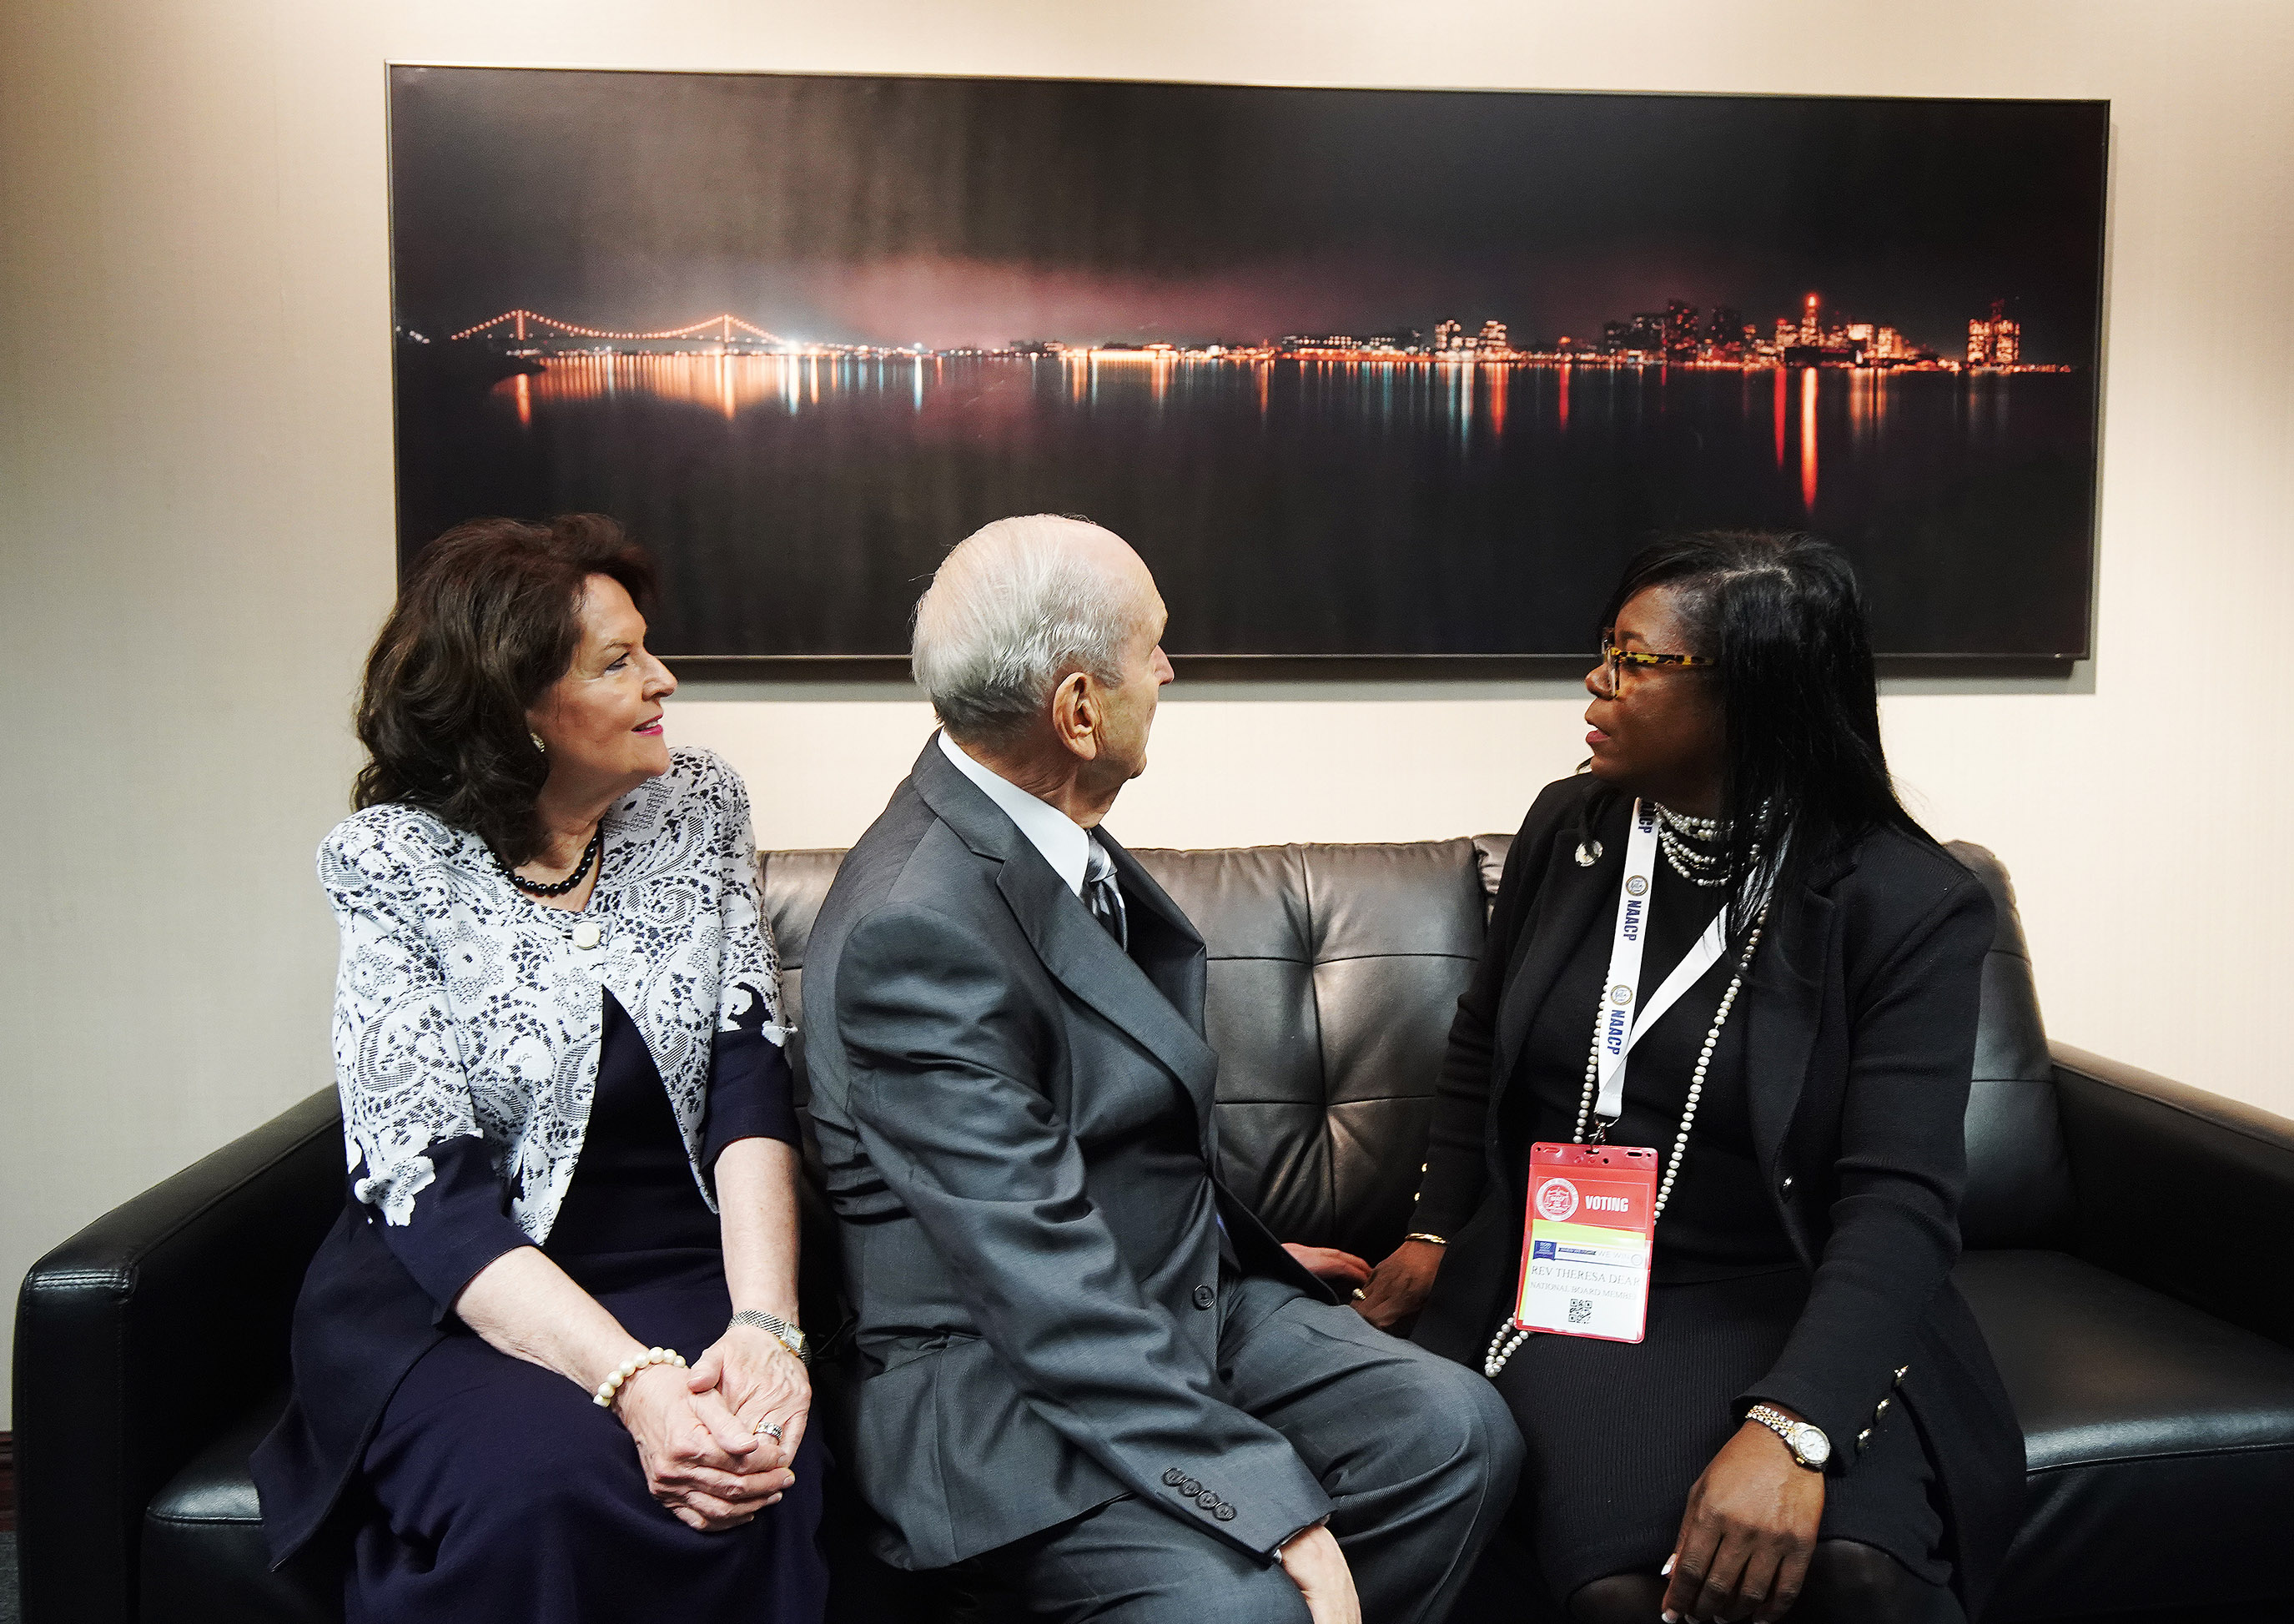 President Russell M. Nelson of The Church of Jesus Christ of Latter-day Saints and his wife, Sister Wendy Nelson, look over a photo of Detroit with the Rev. Theresa Deer while meeting with NAACP leaders at the 110th annual national convention for the National Association for the Advancement of Colored People in Detroit, Michigan, on Sunday, July 21, 2019.